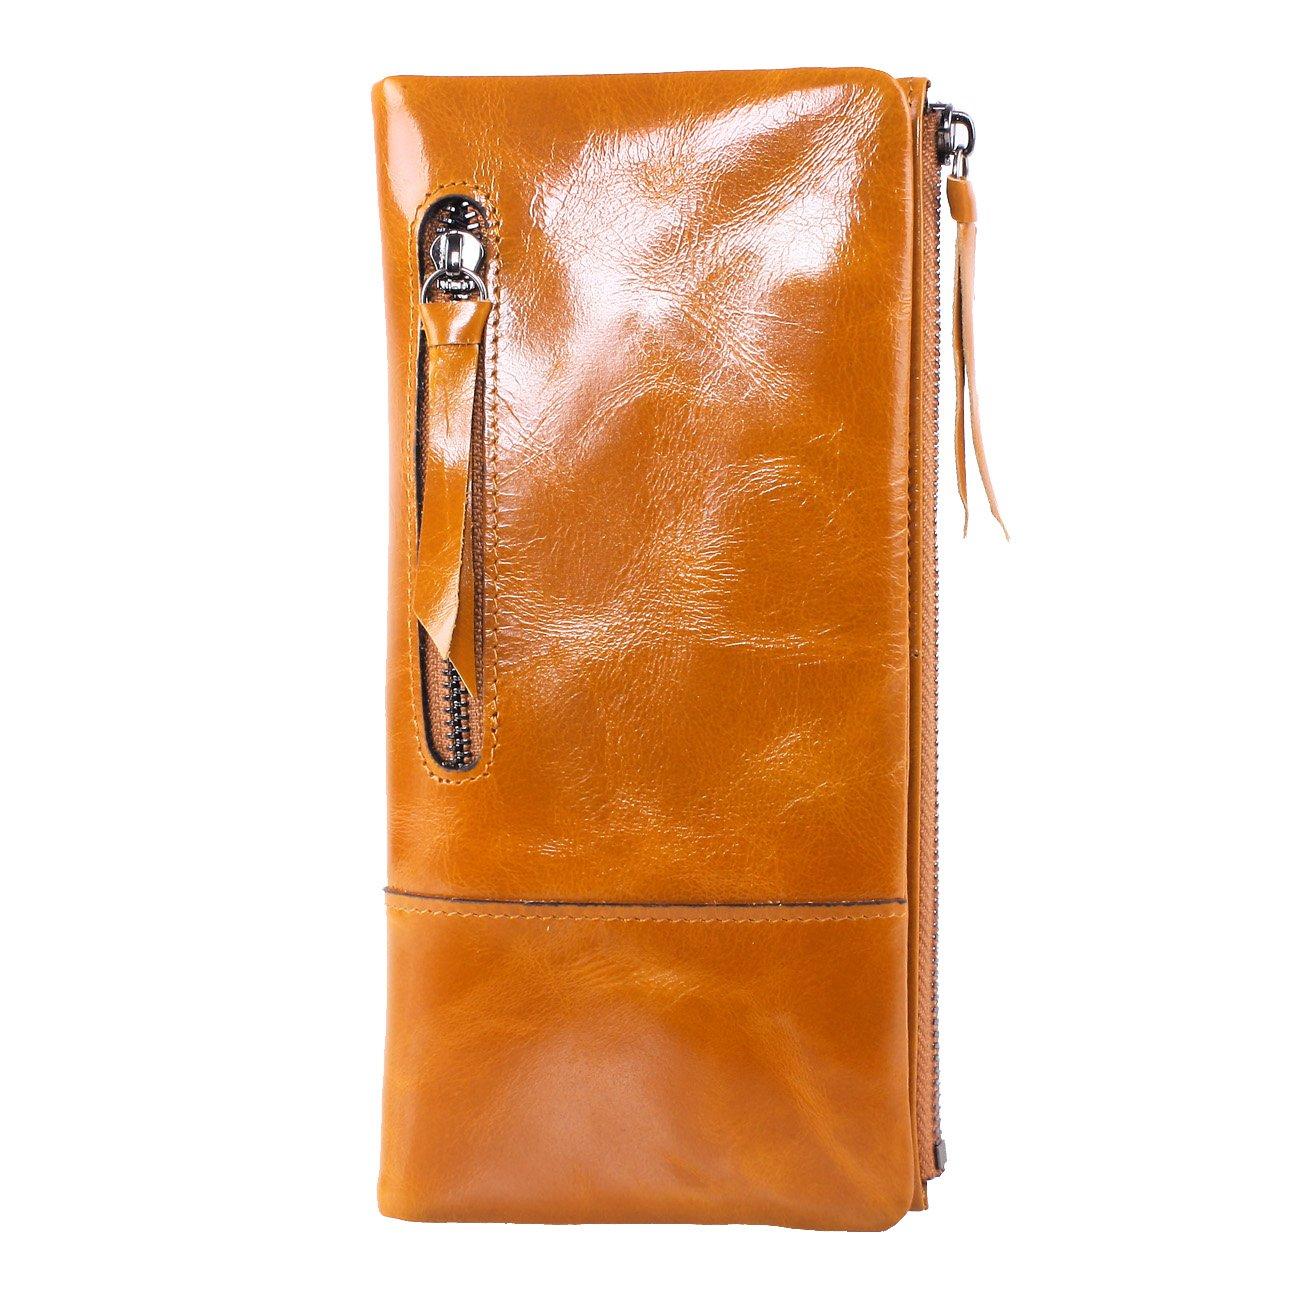 AINIMOER New Women Fashion Waxy Leather Vintage Billfold Long Wallet Casual Simple Style Mini Clutch Card Holder Zipper Closure Money Clip(Brown)